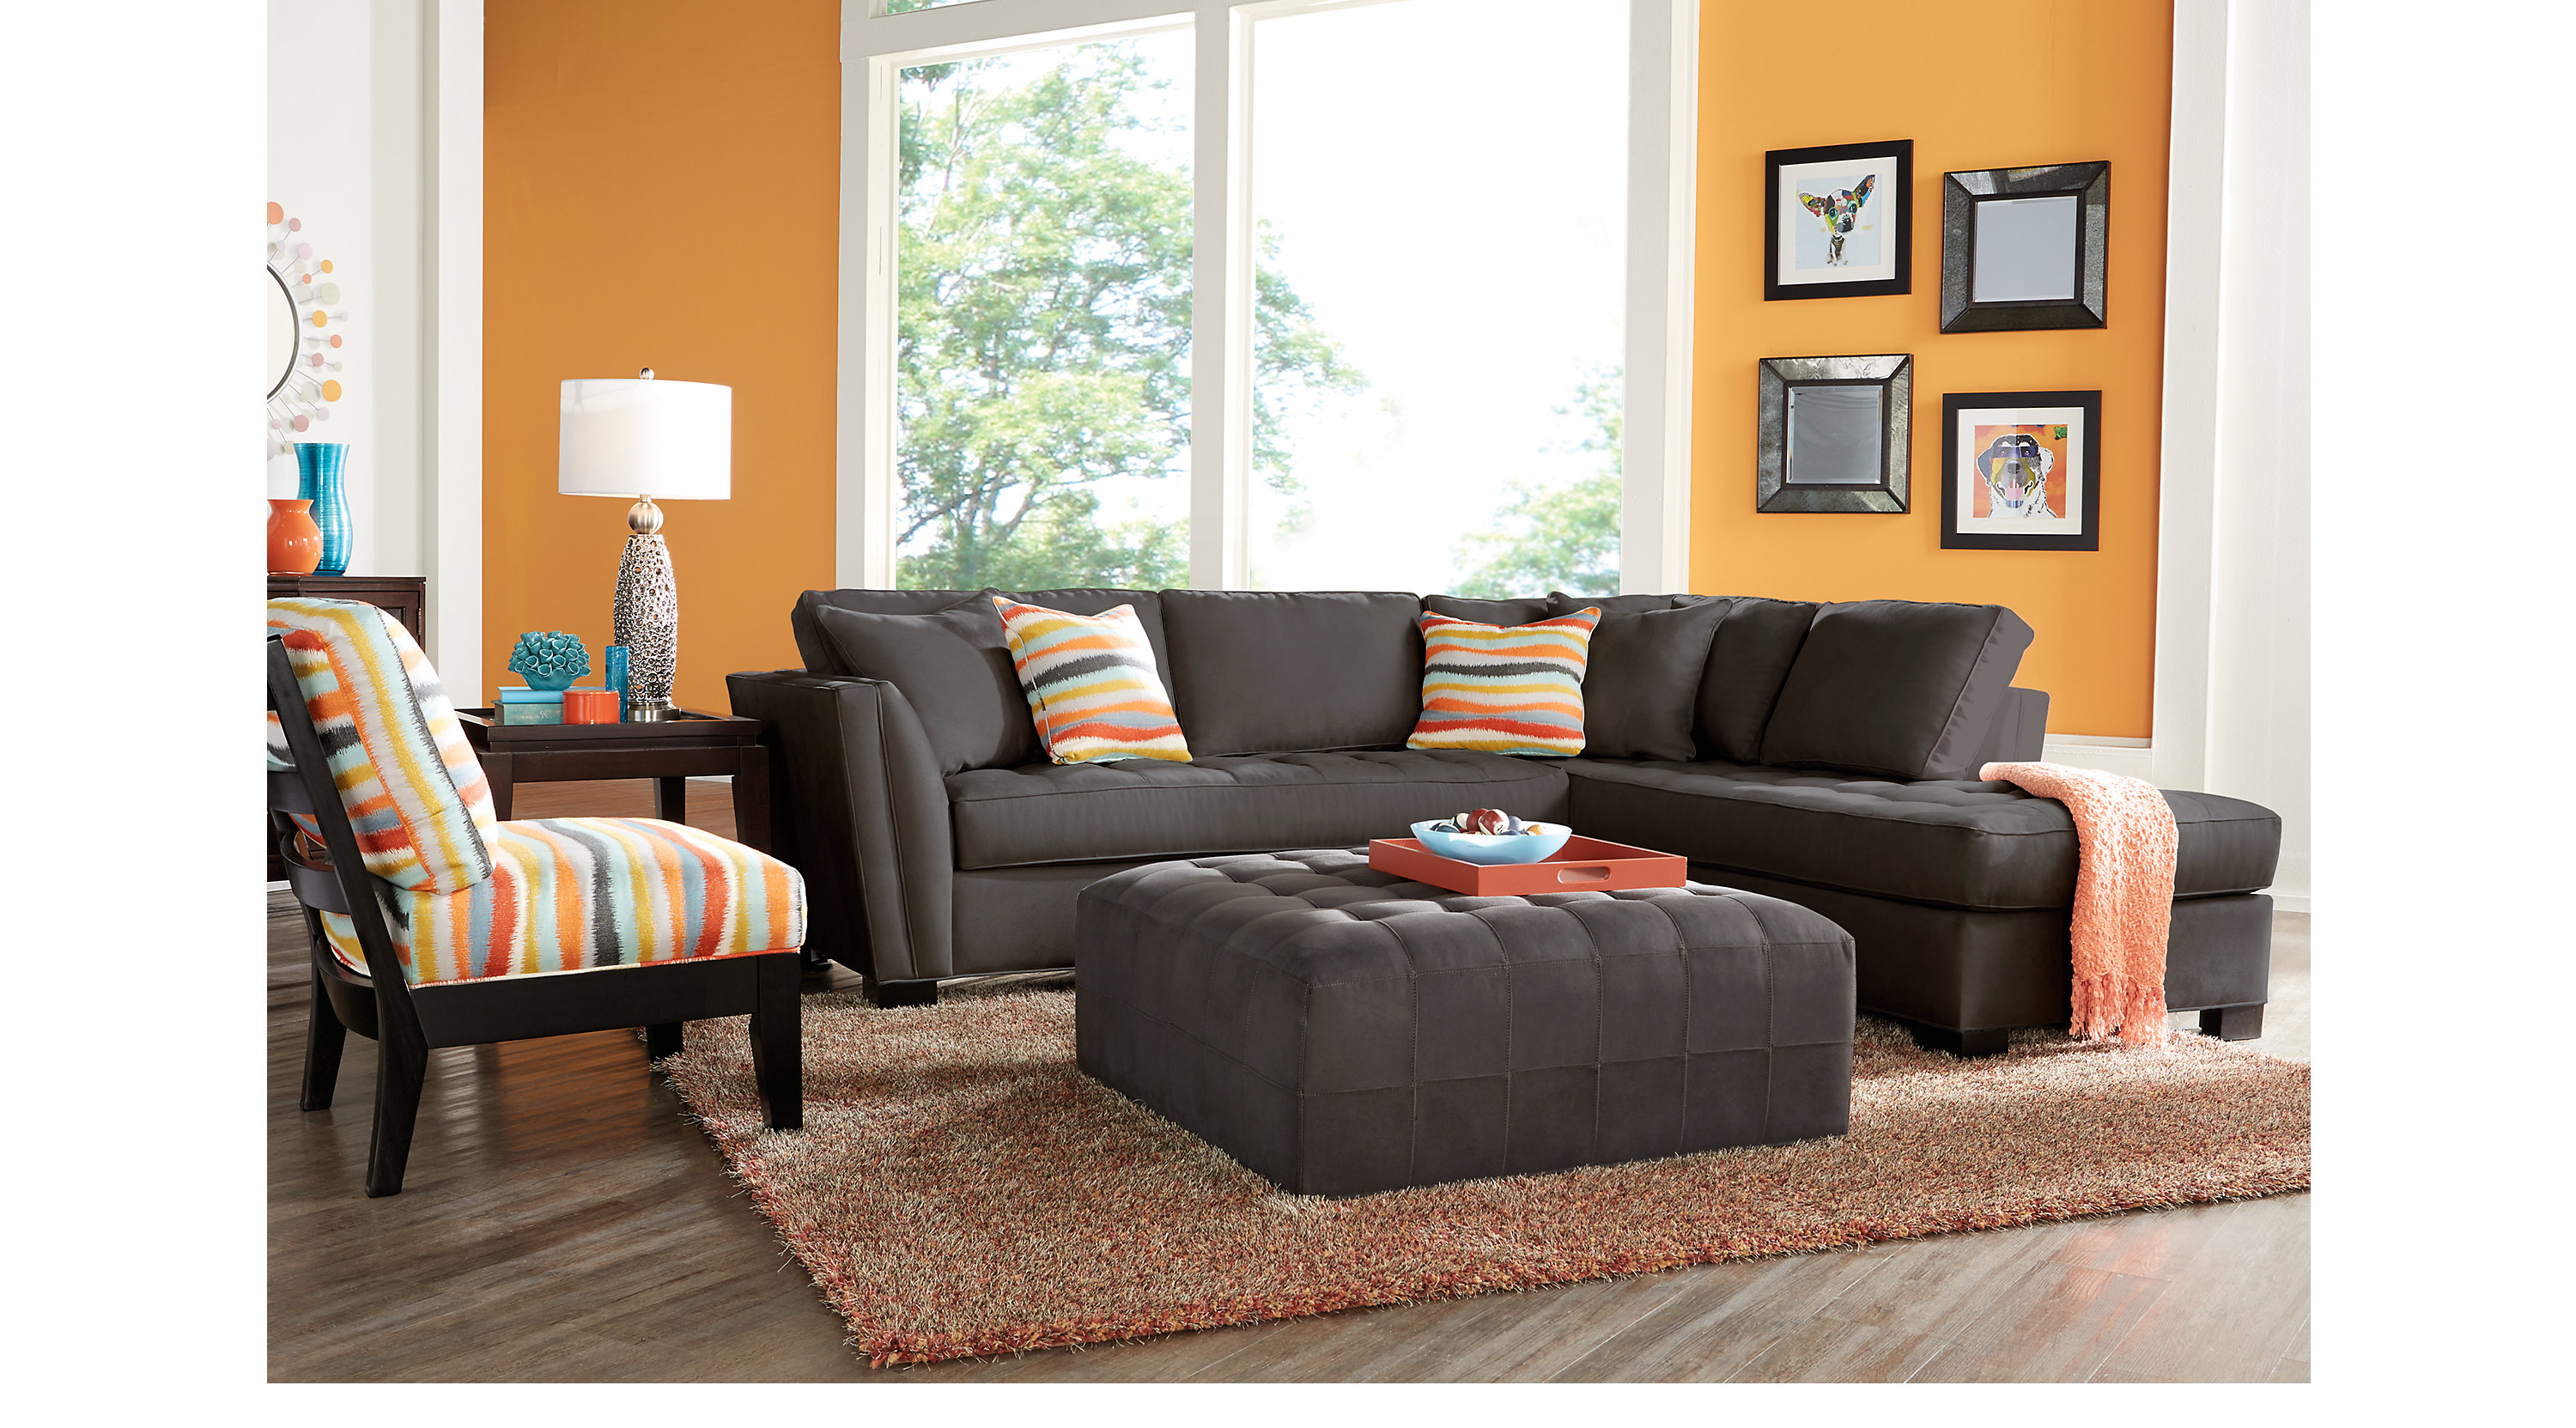 Orange Gray Living Room Inspiration Ideas For Decorating